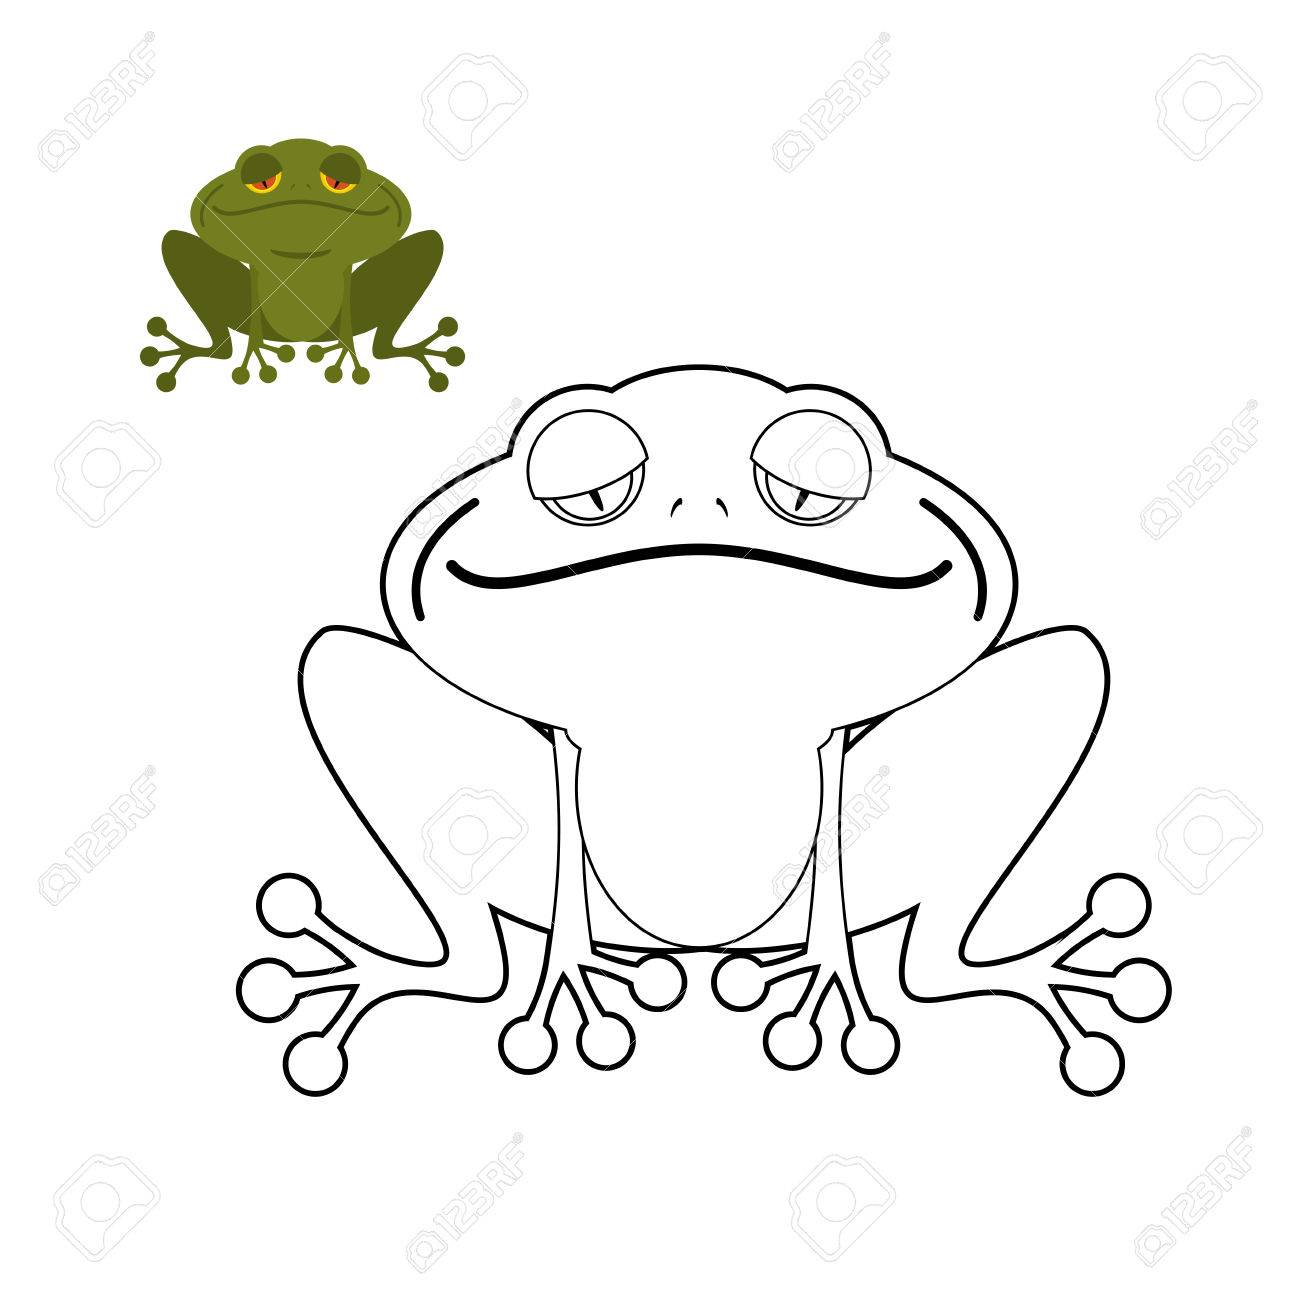 Frog Coloring Book. Funny Amphibious Reptile. Animal From Swamp ...